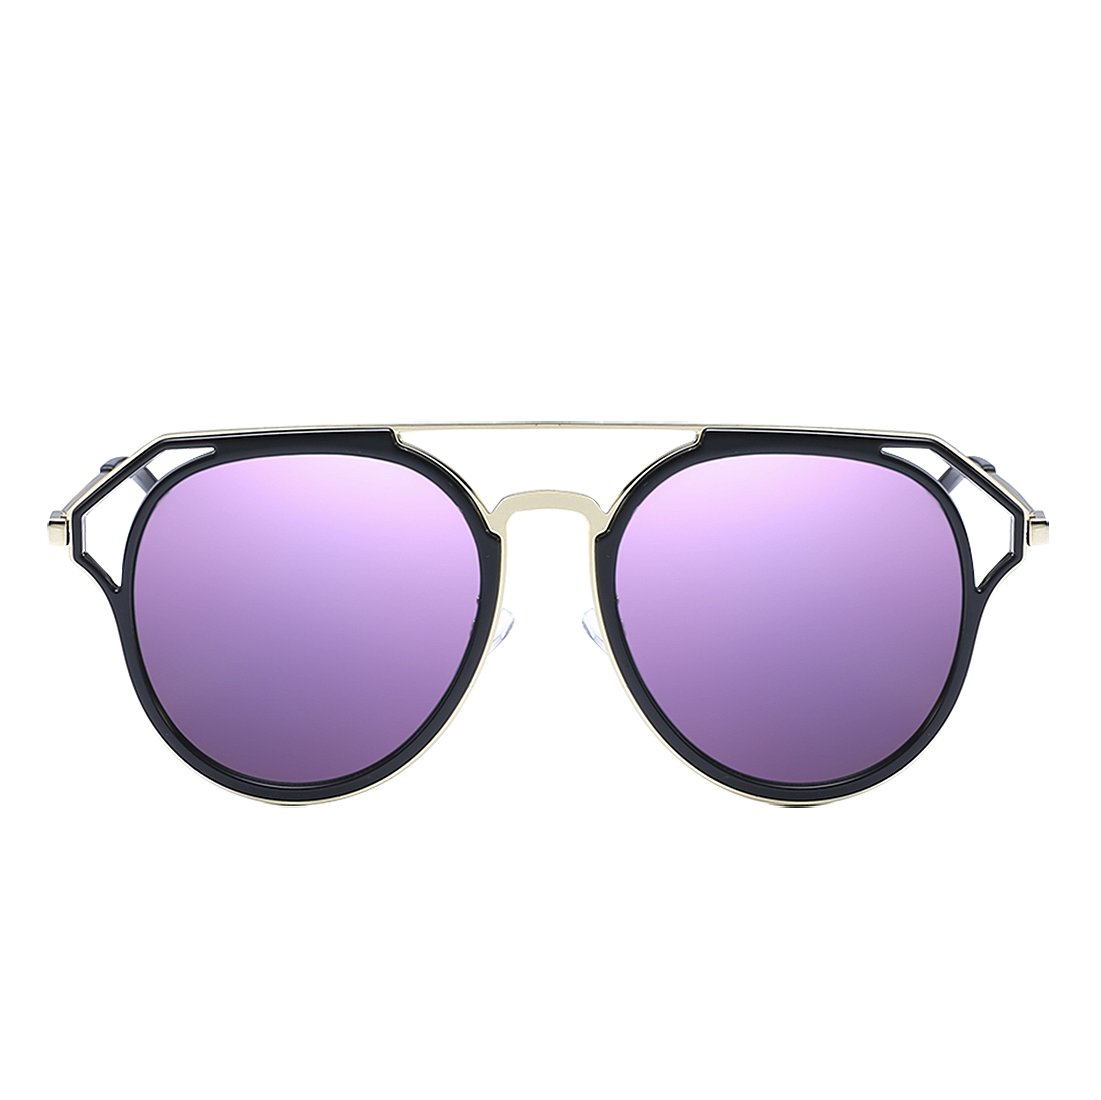 Zeraca Women's Fashion Cutout Cat Eye Polarized Sunglasses (Black Frame Purple Lens)